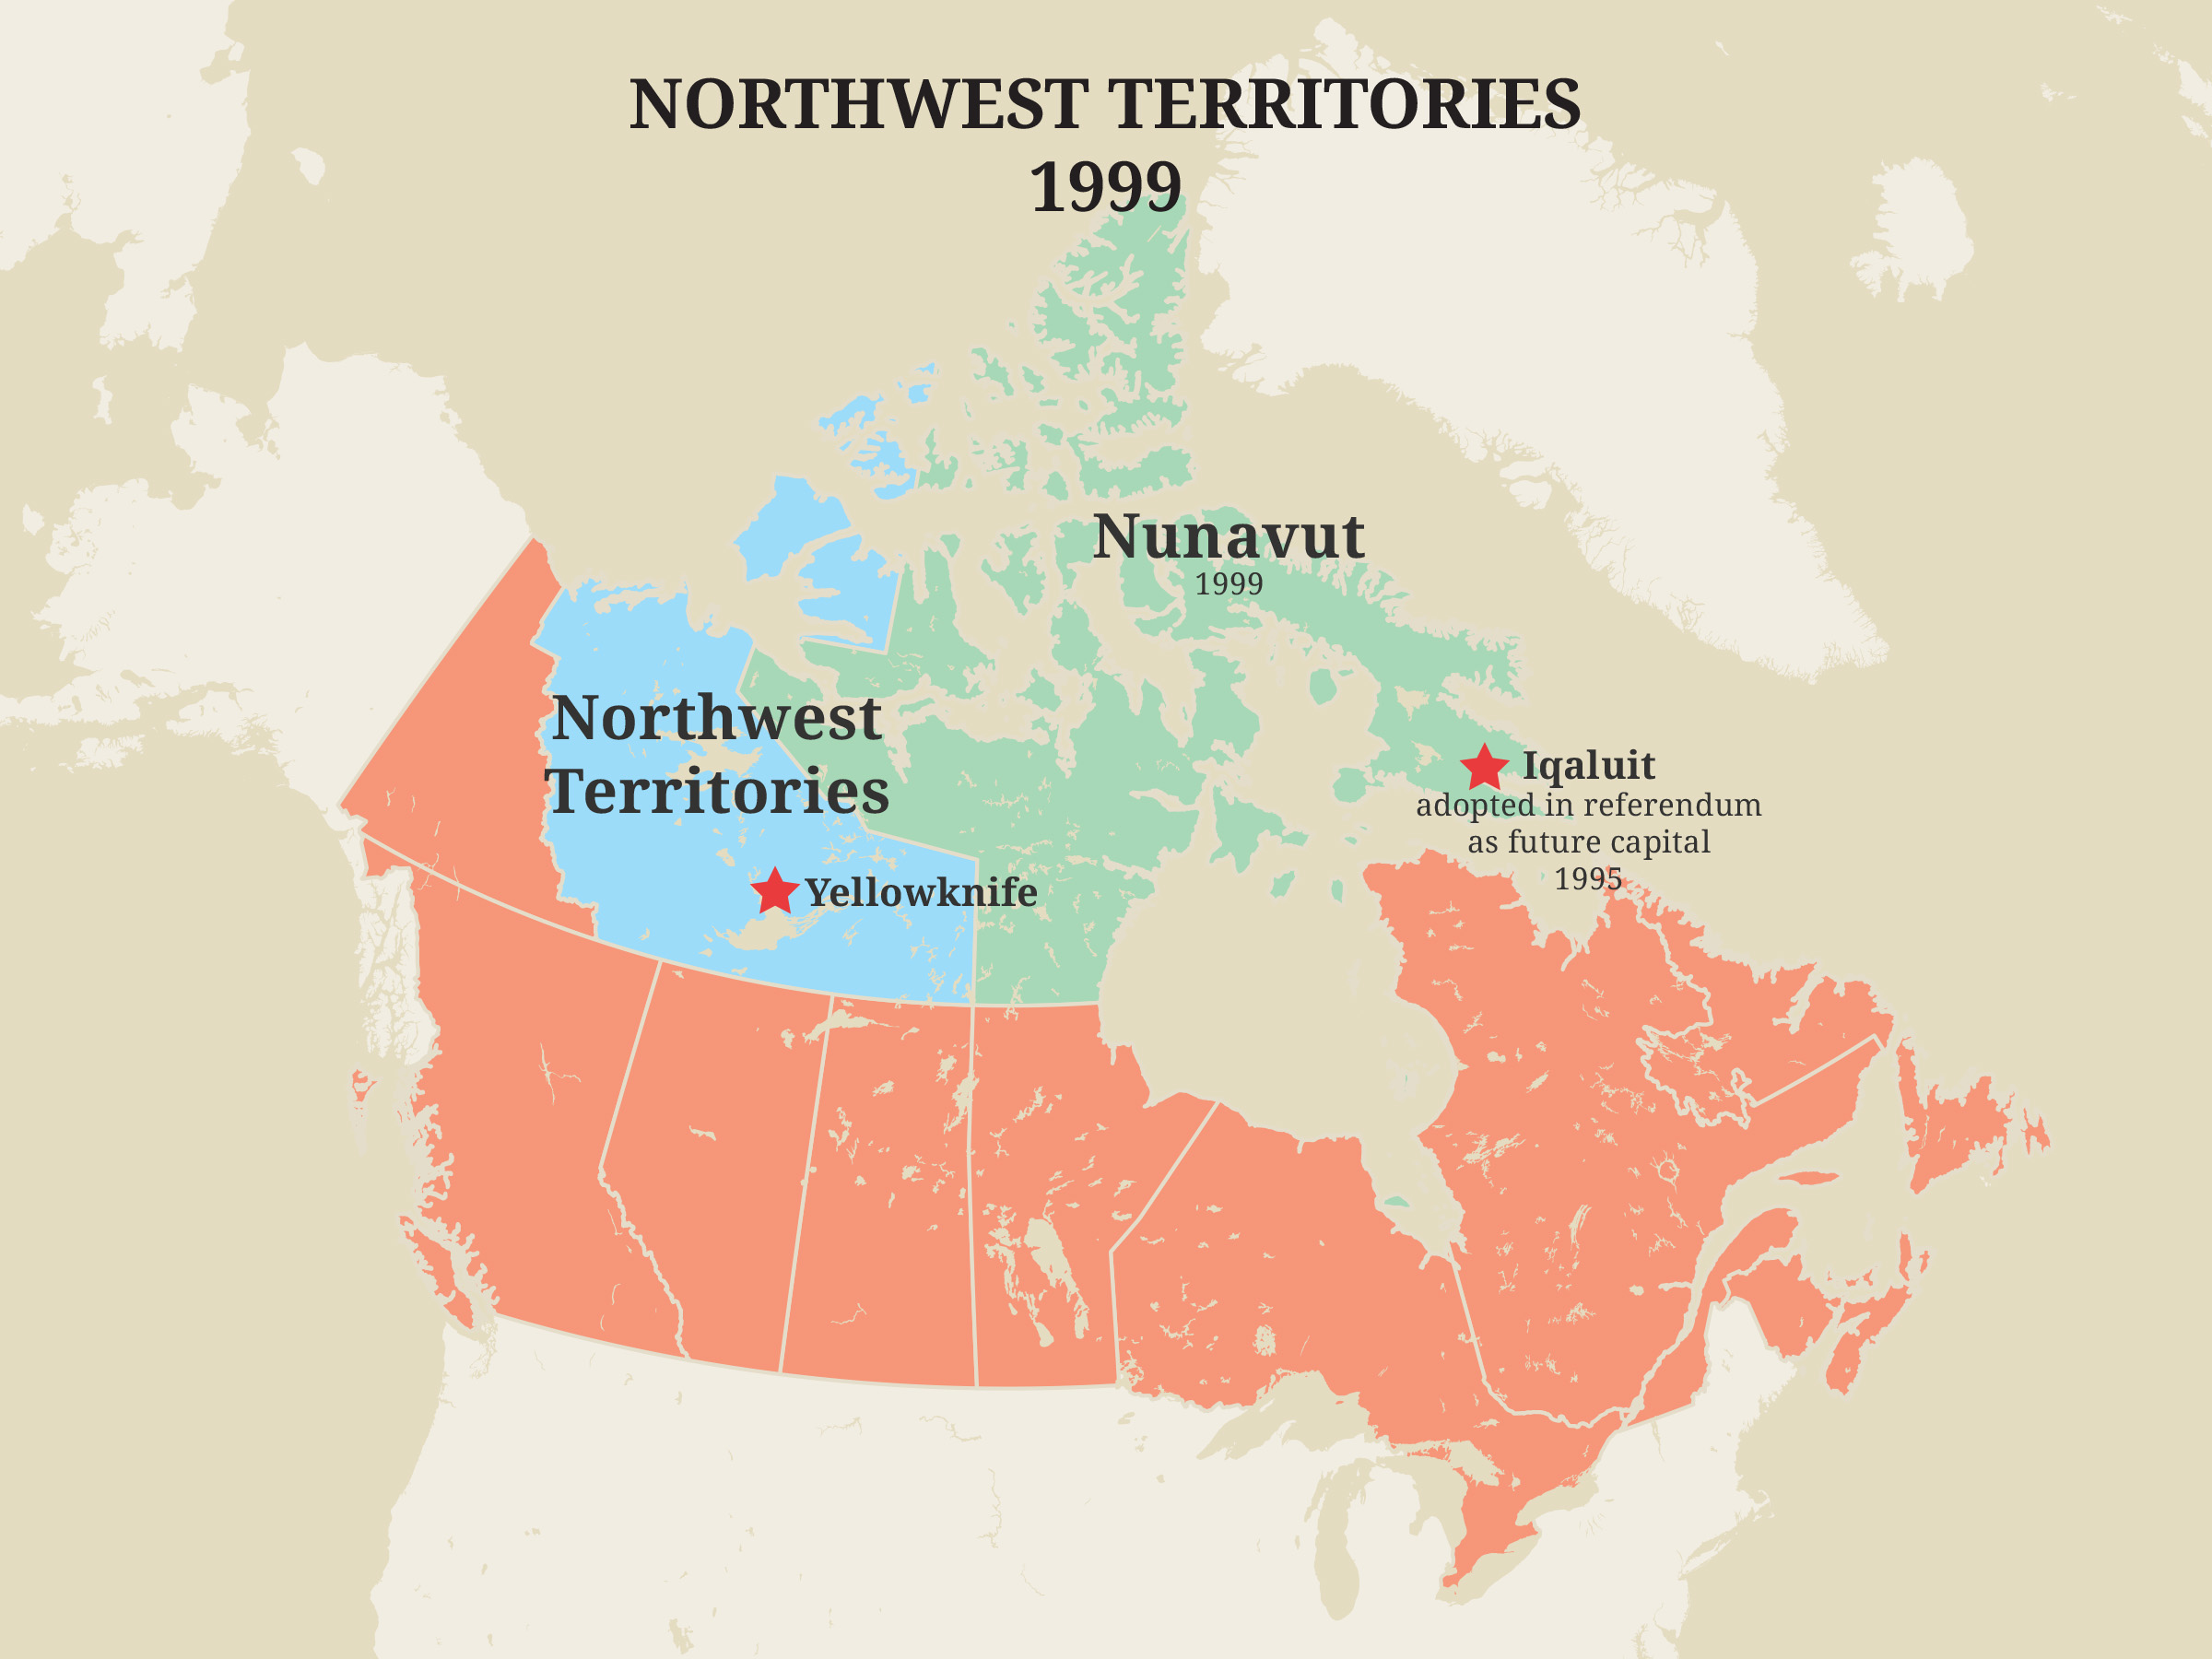 Northwest Territories, 1999